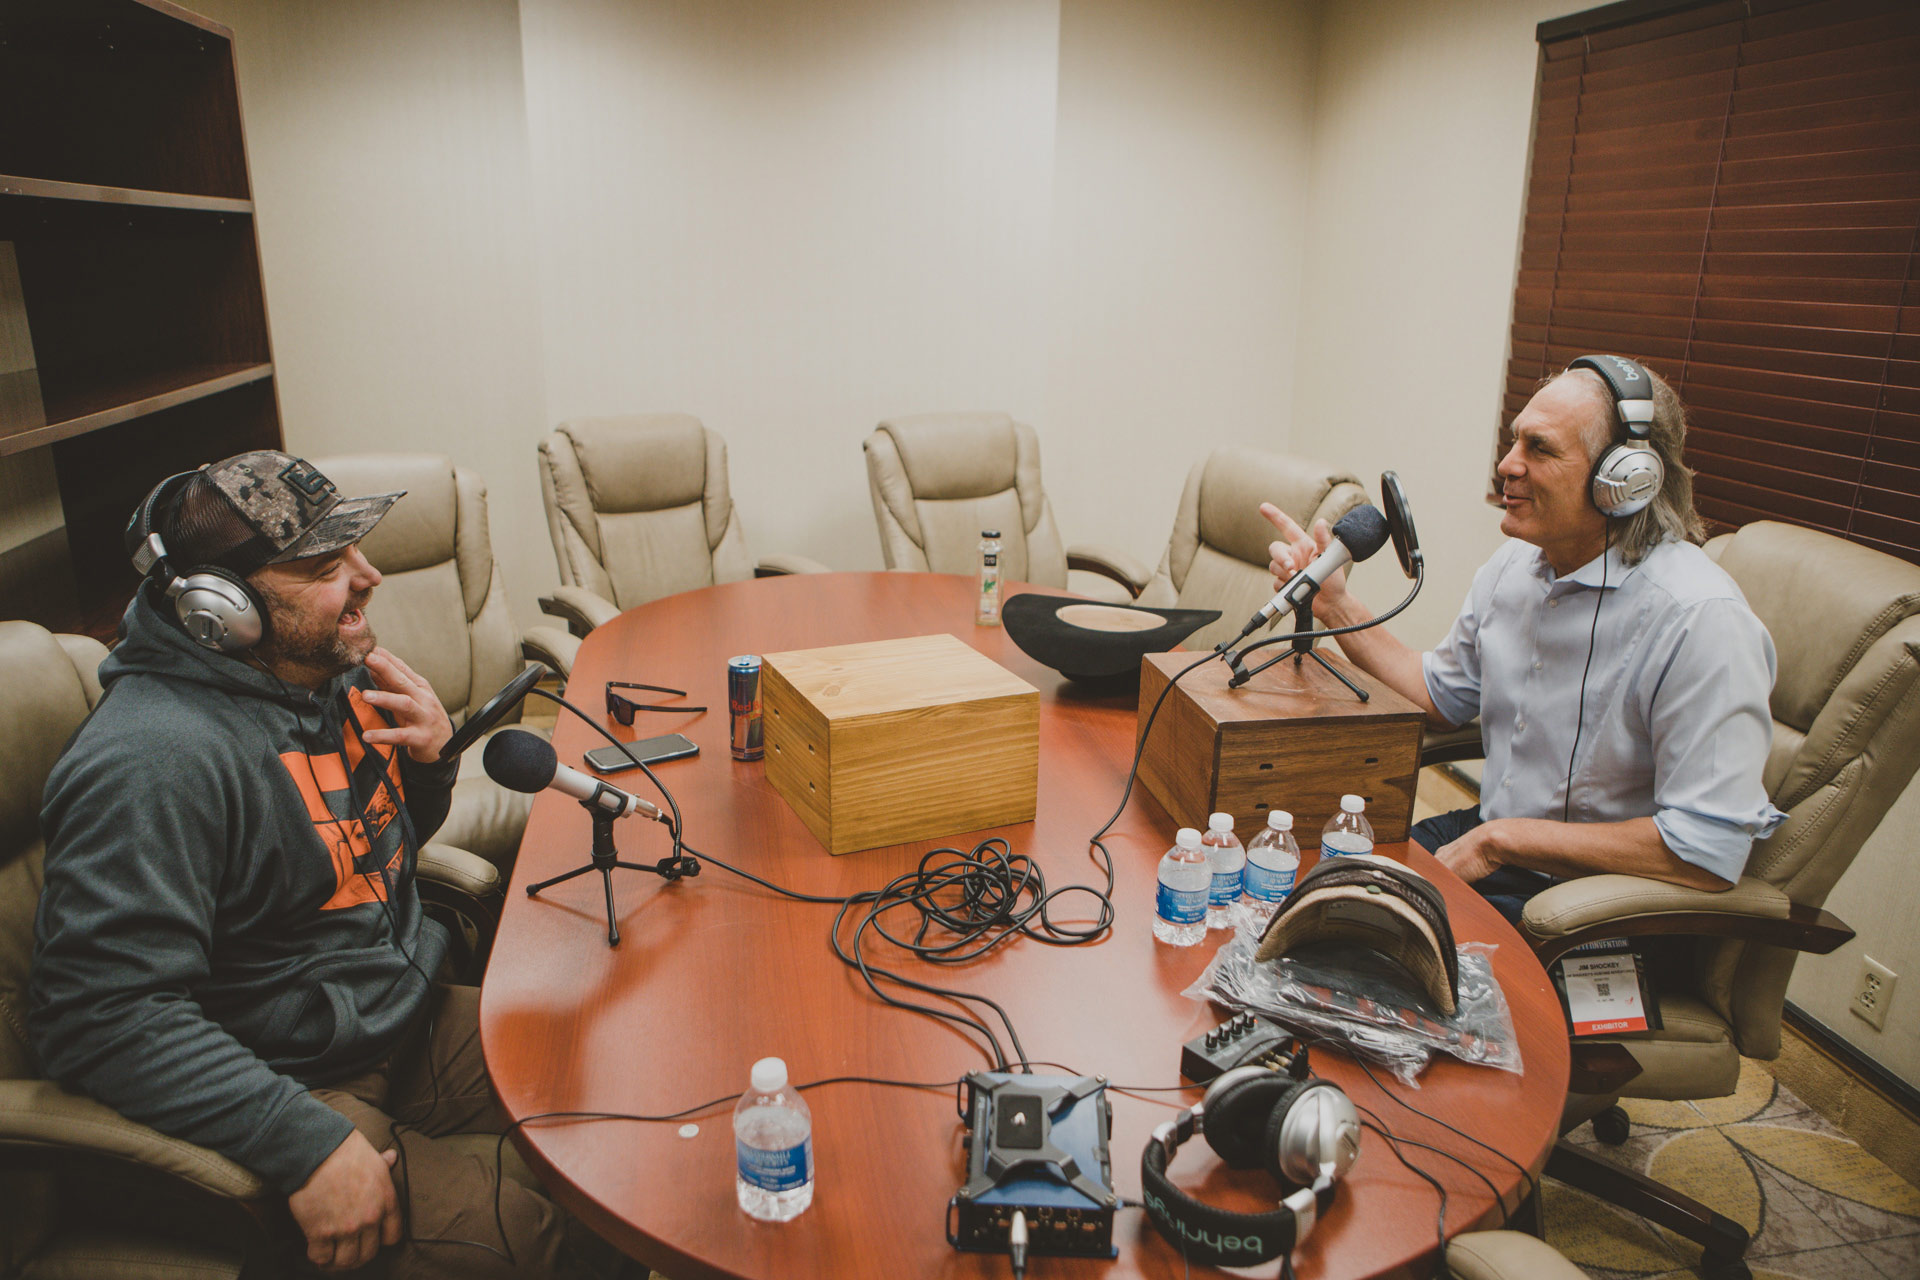 Jim Shockey and Chad Belding Podcasting